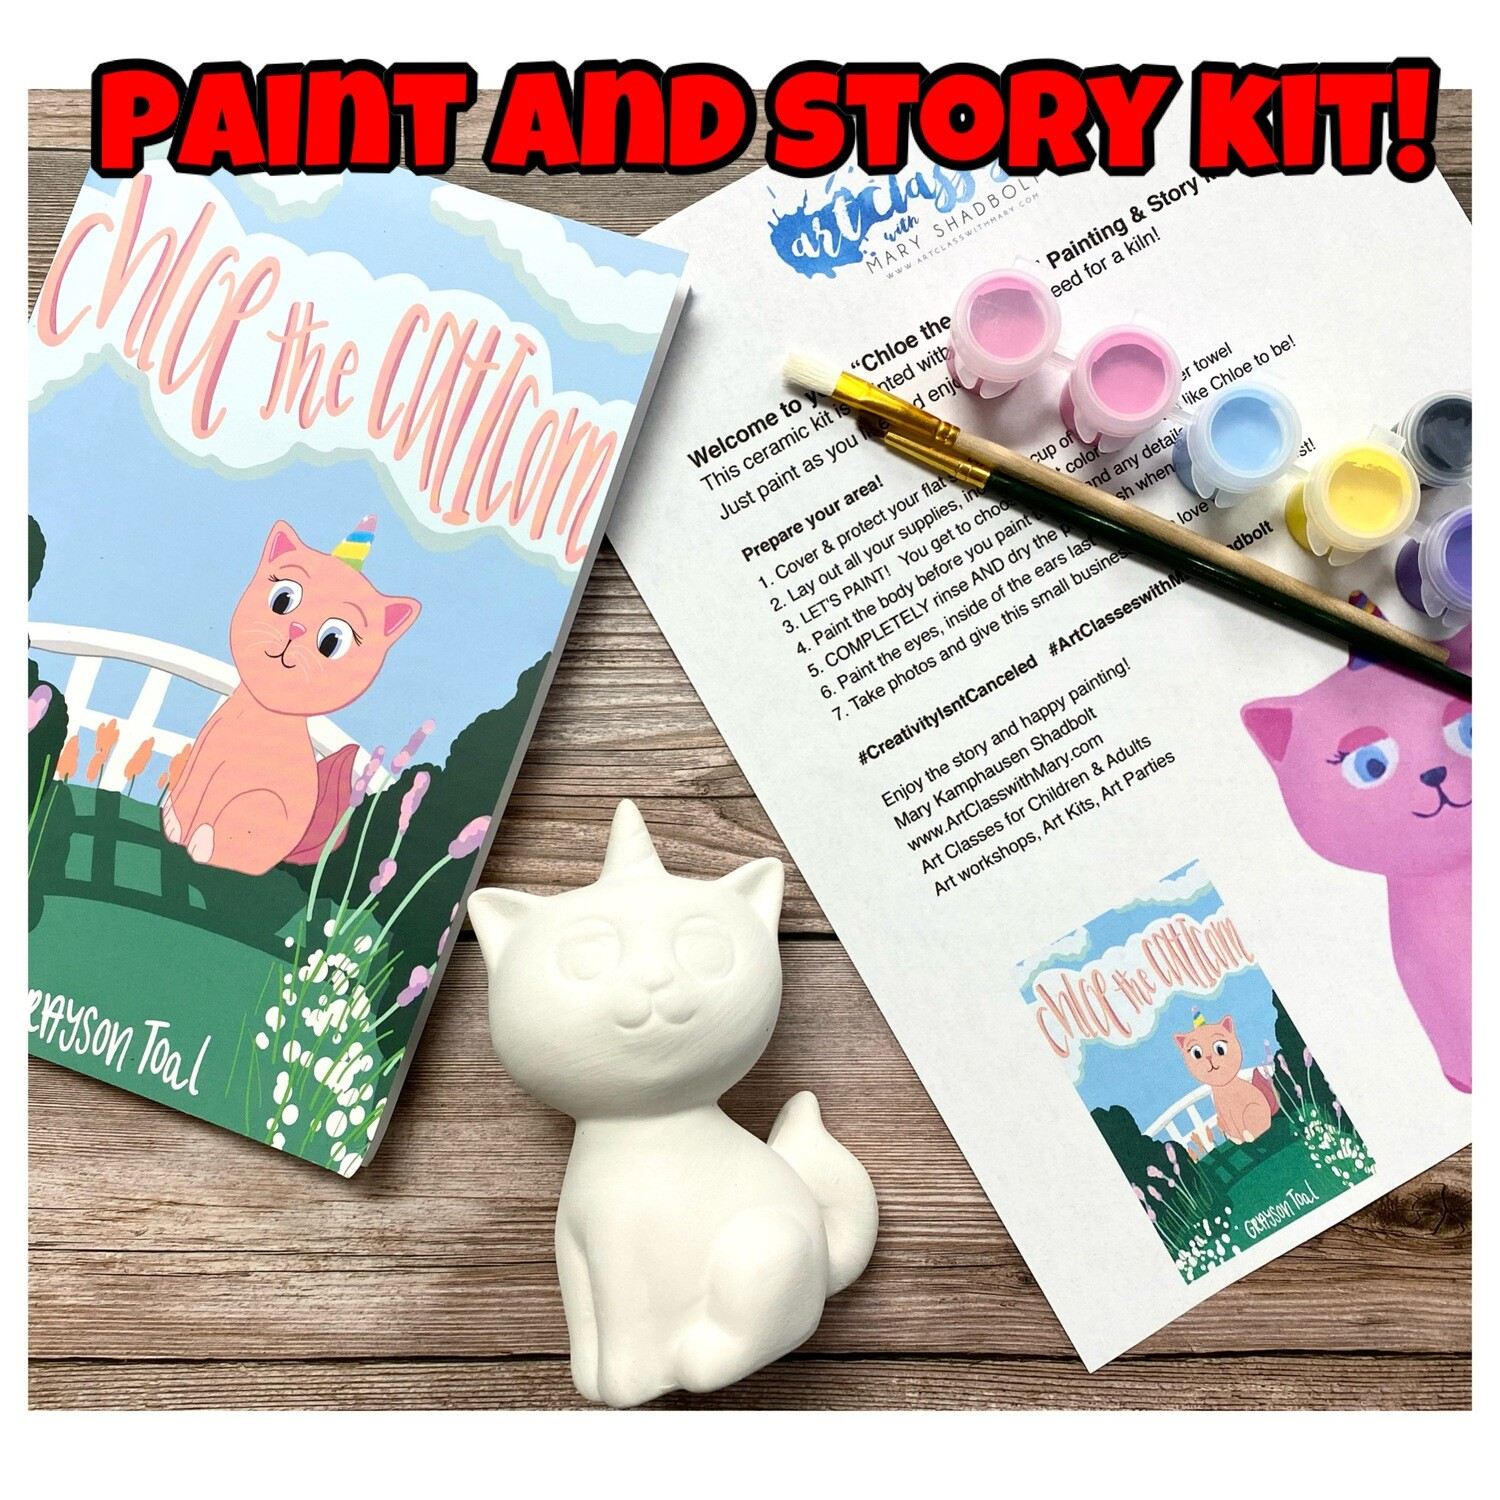 Chloe the Caticorn Paint and Story Kit!